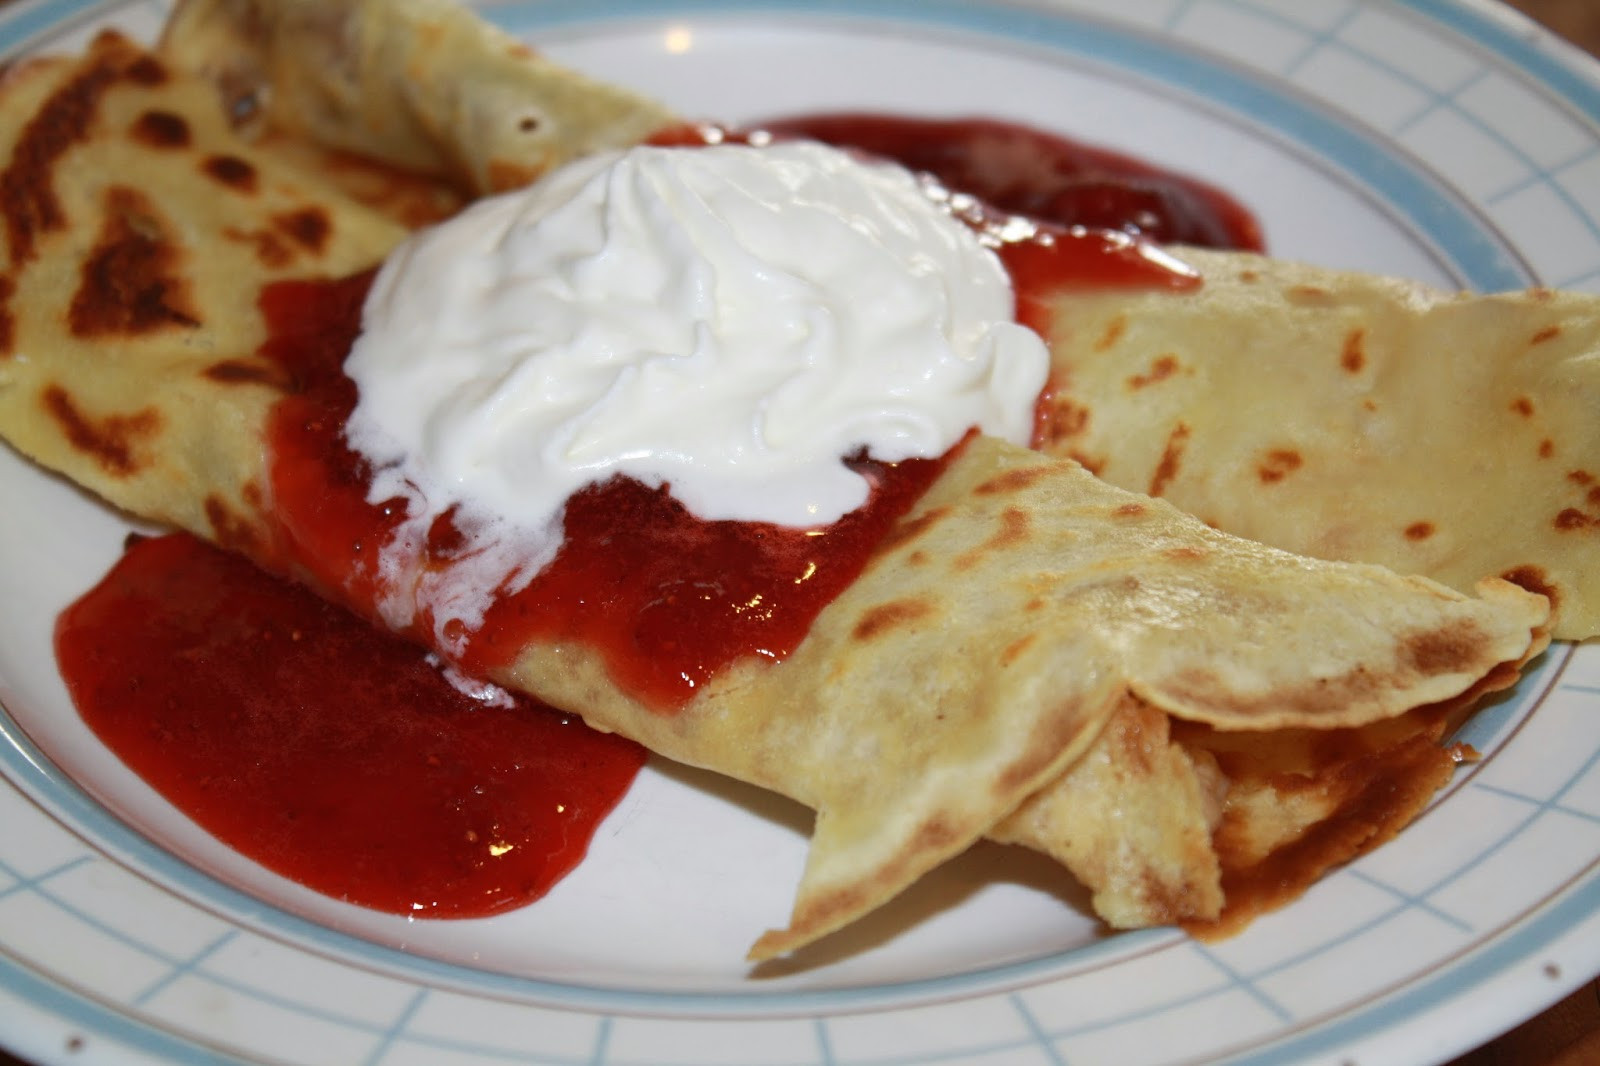 Cream Cheese Crepes  Her Peculiar Life Strawberry & Cream Cheese Crepes